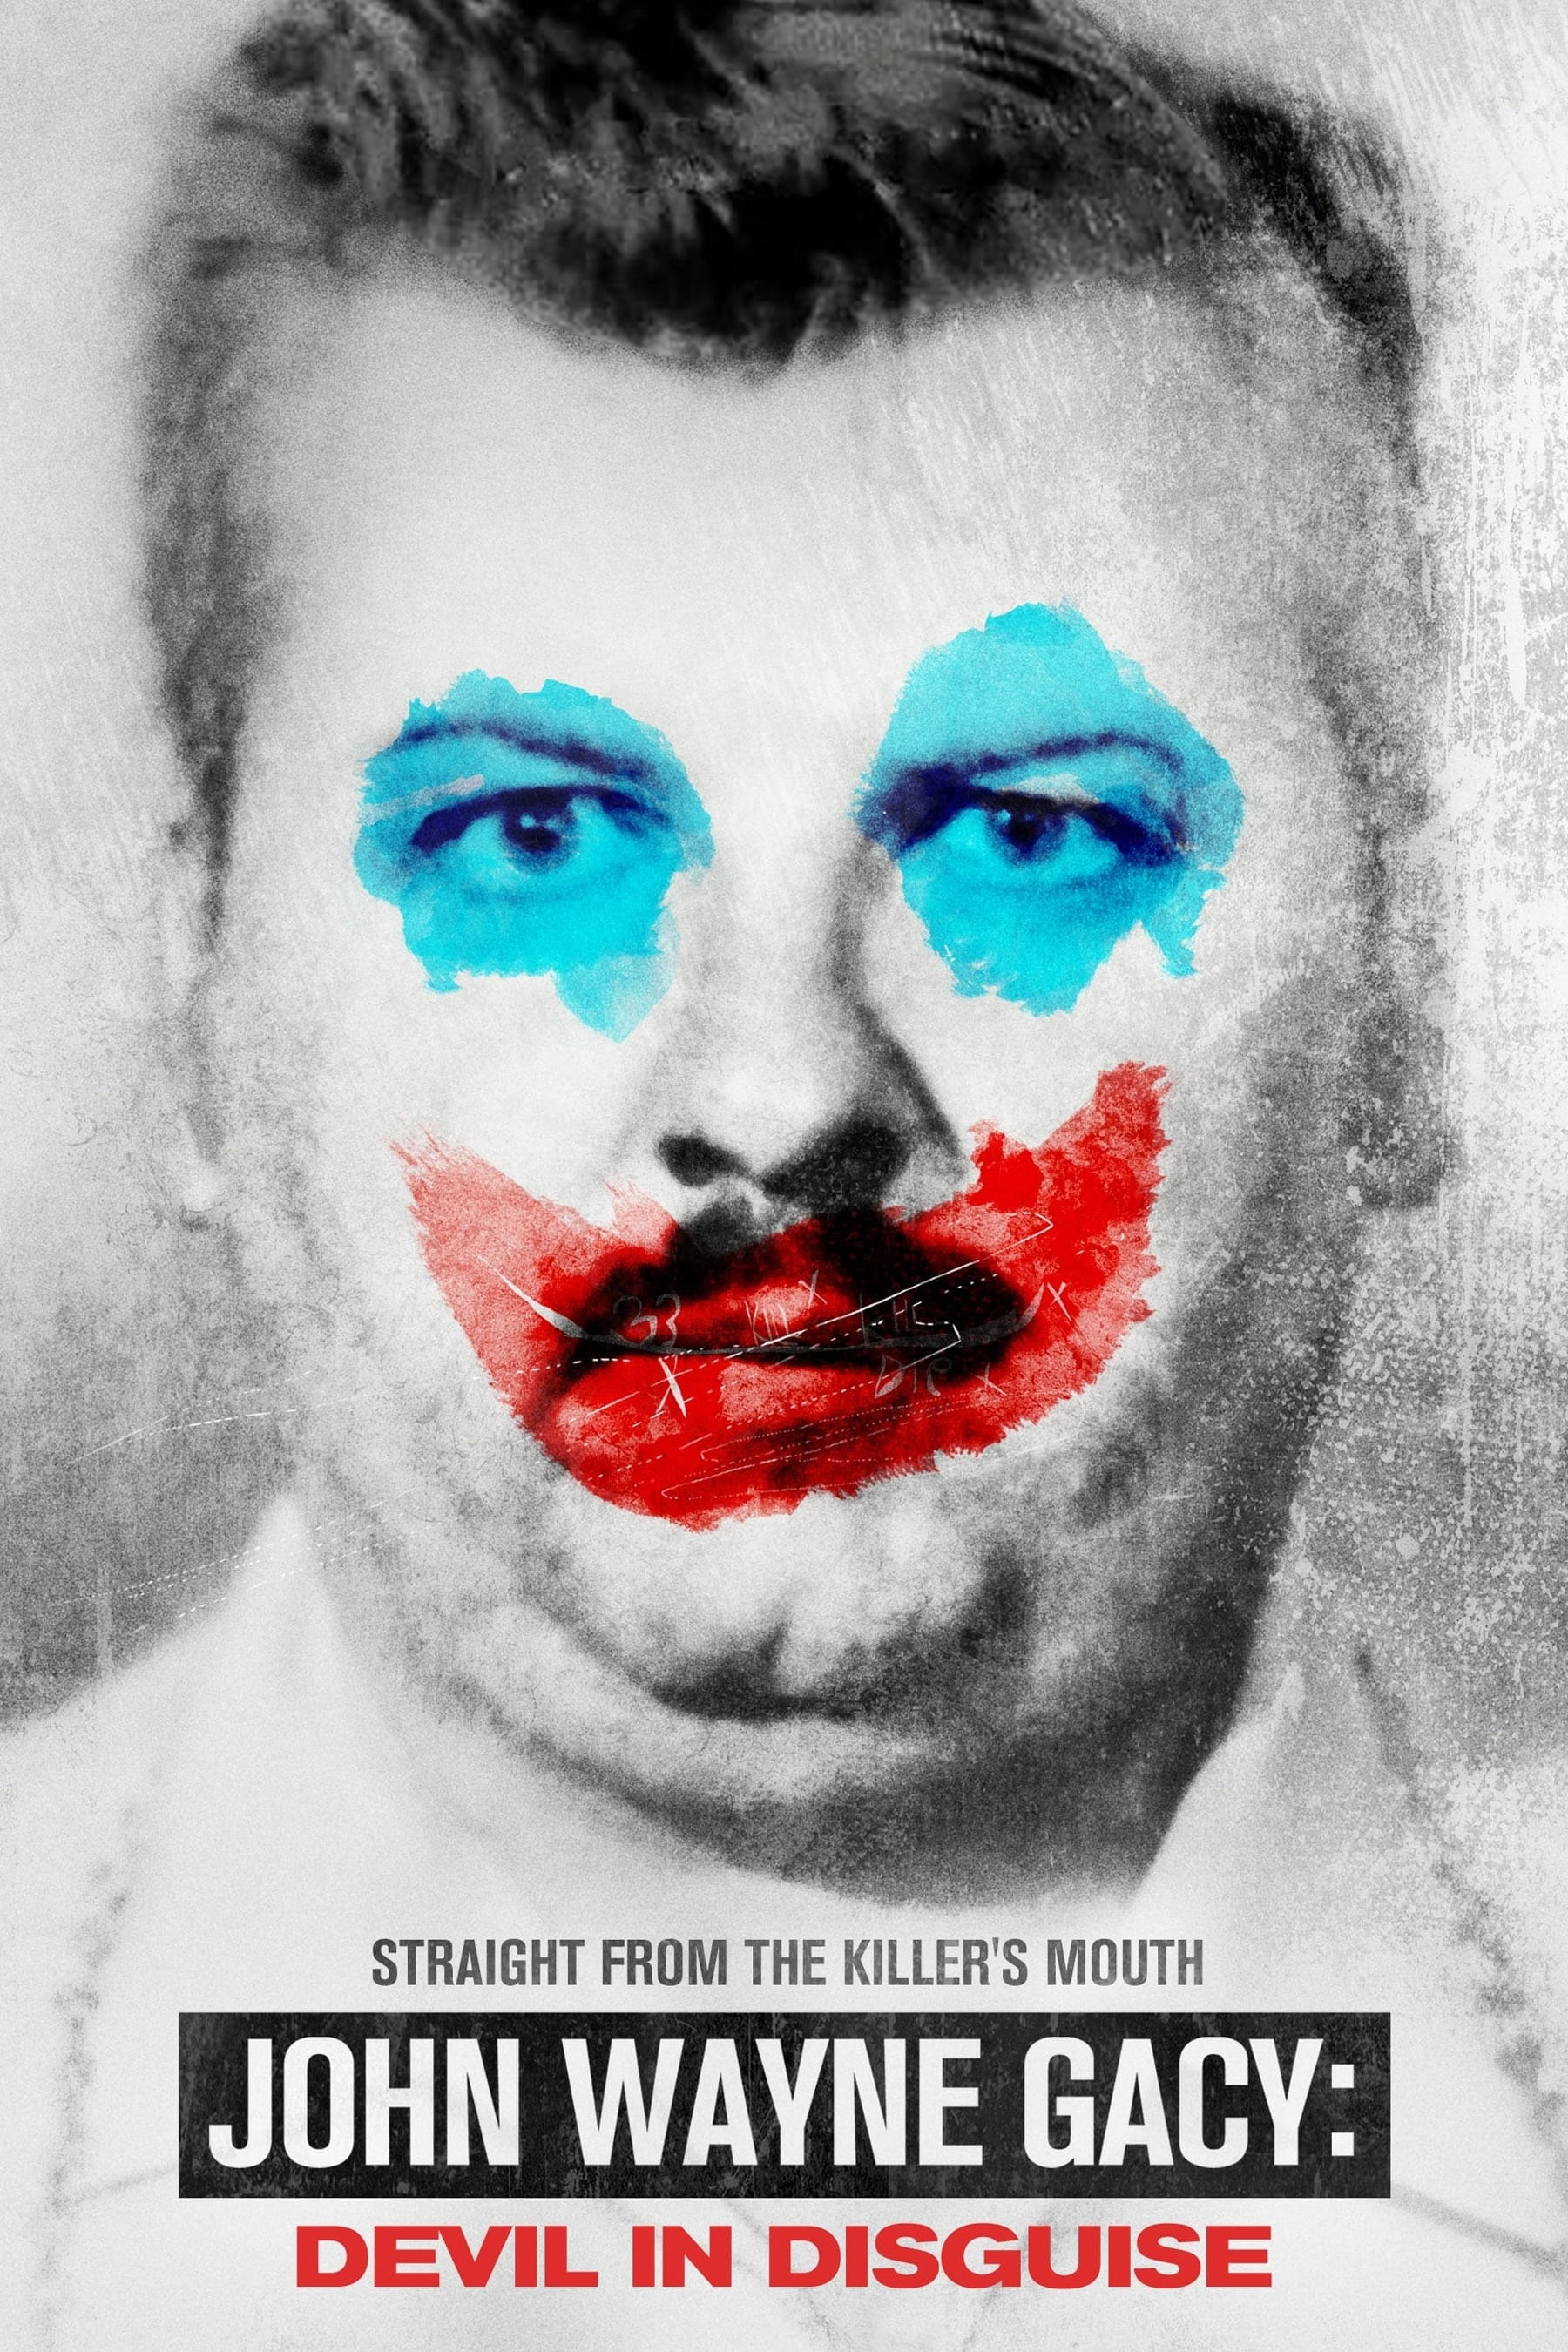 John Wayne Gacy: Devil in Disguise TV Shows About Killer